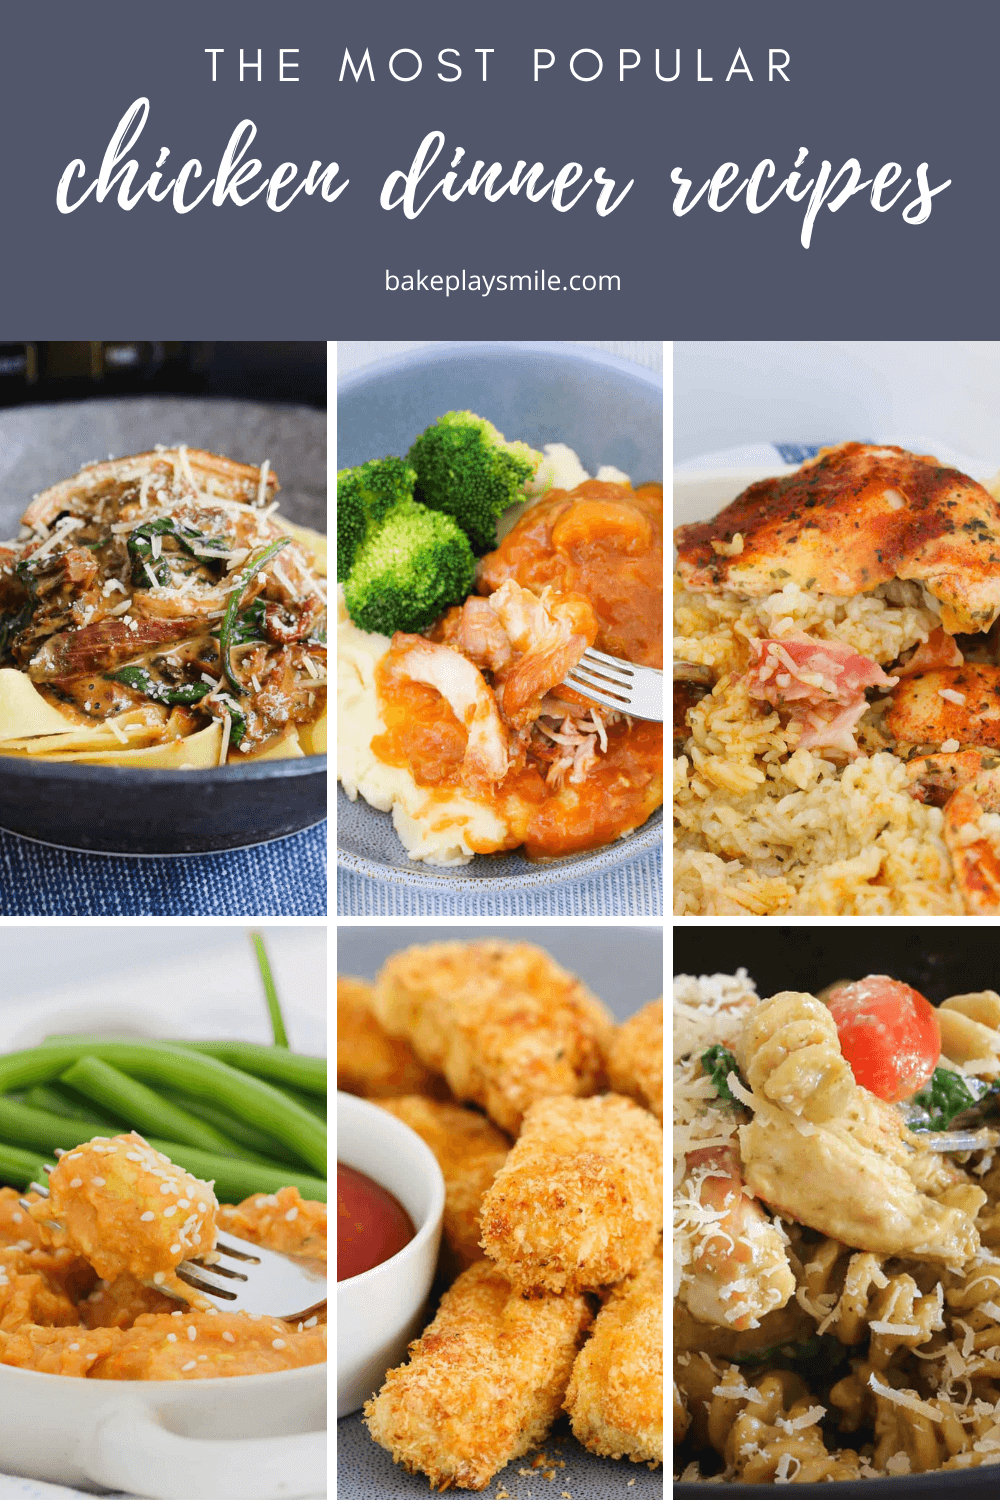 A Pinterest collage of 6 different chicken dinner recipes.